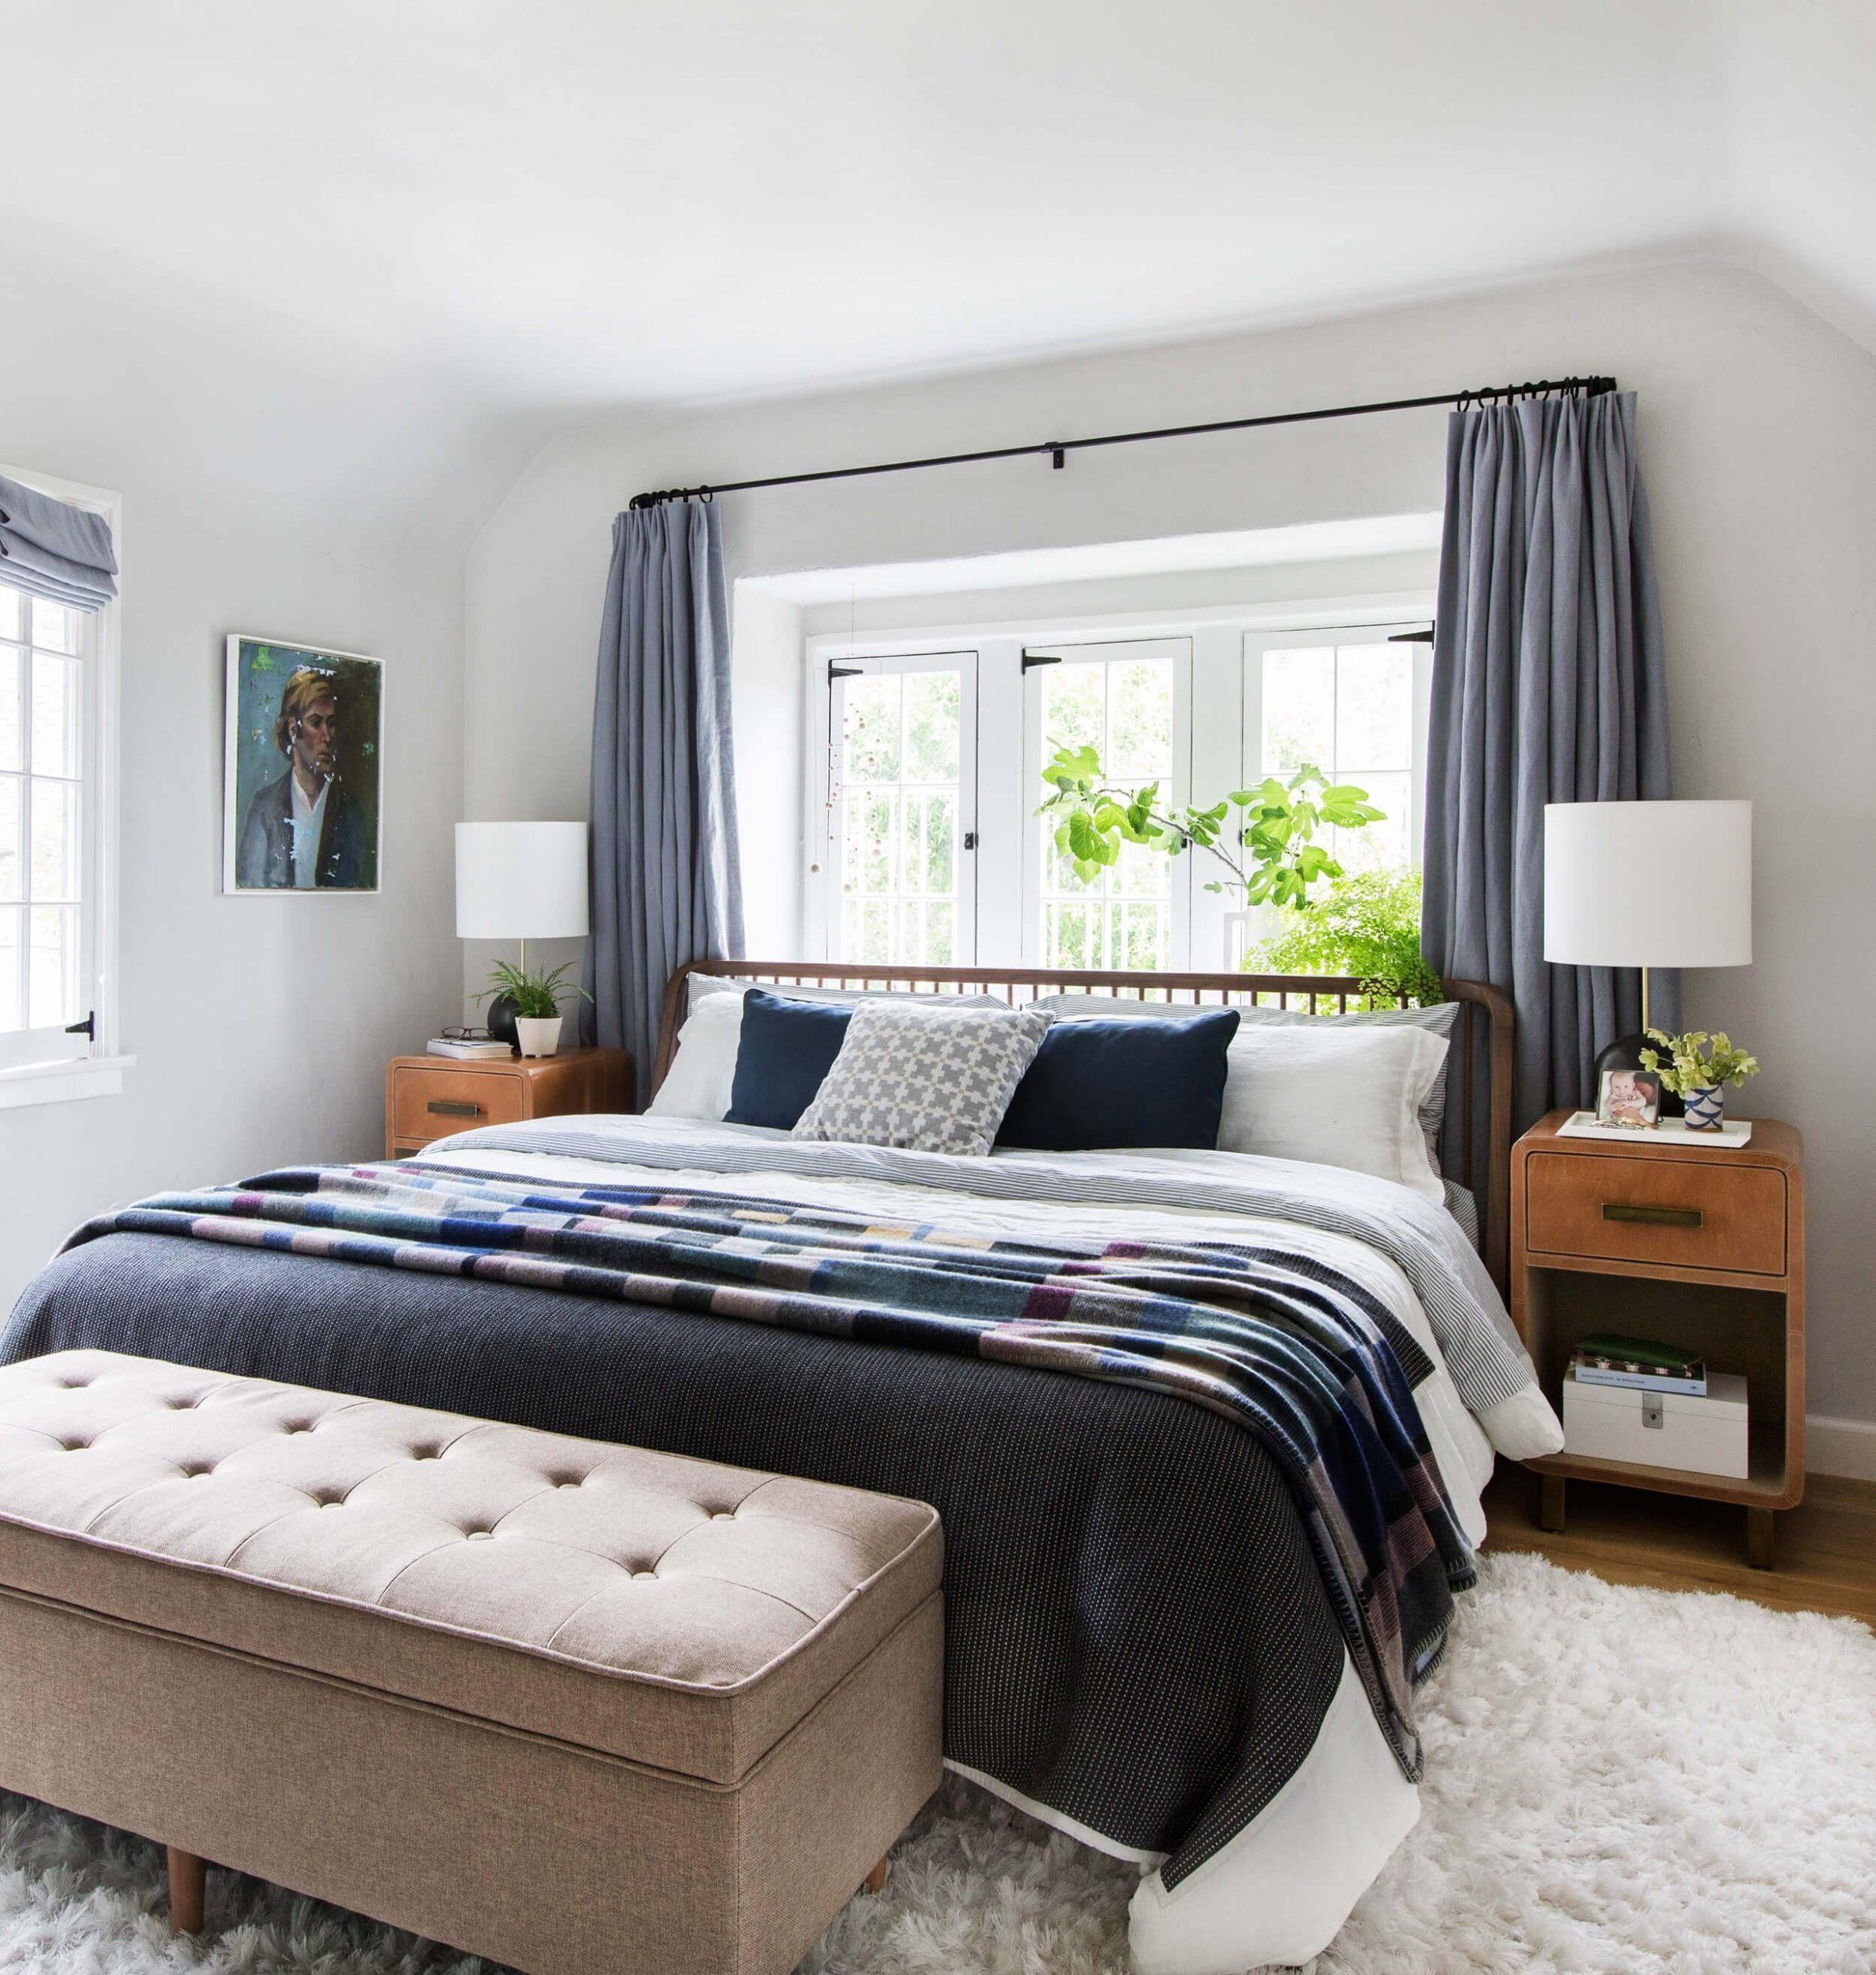 Our Master Bedroom Reveal + Get The Look Emily Henderson